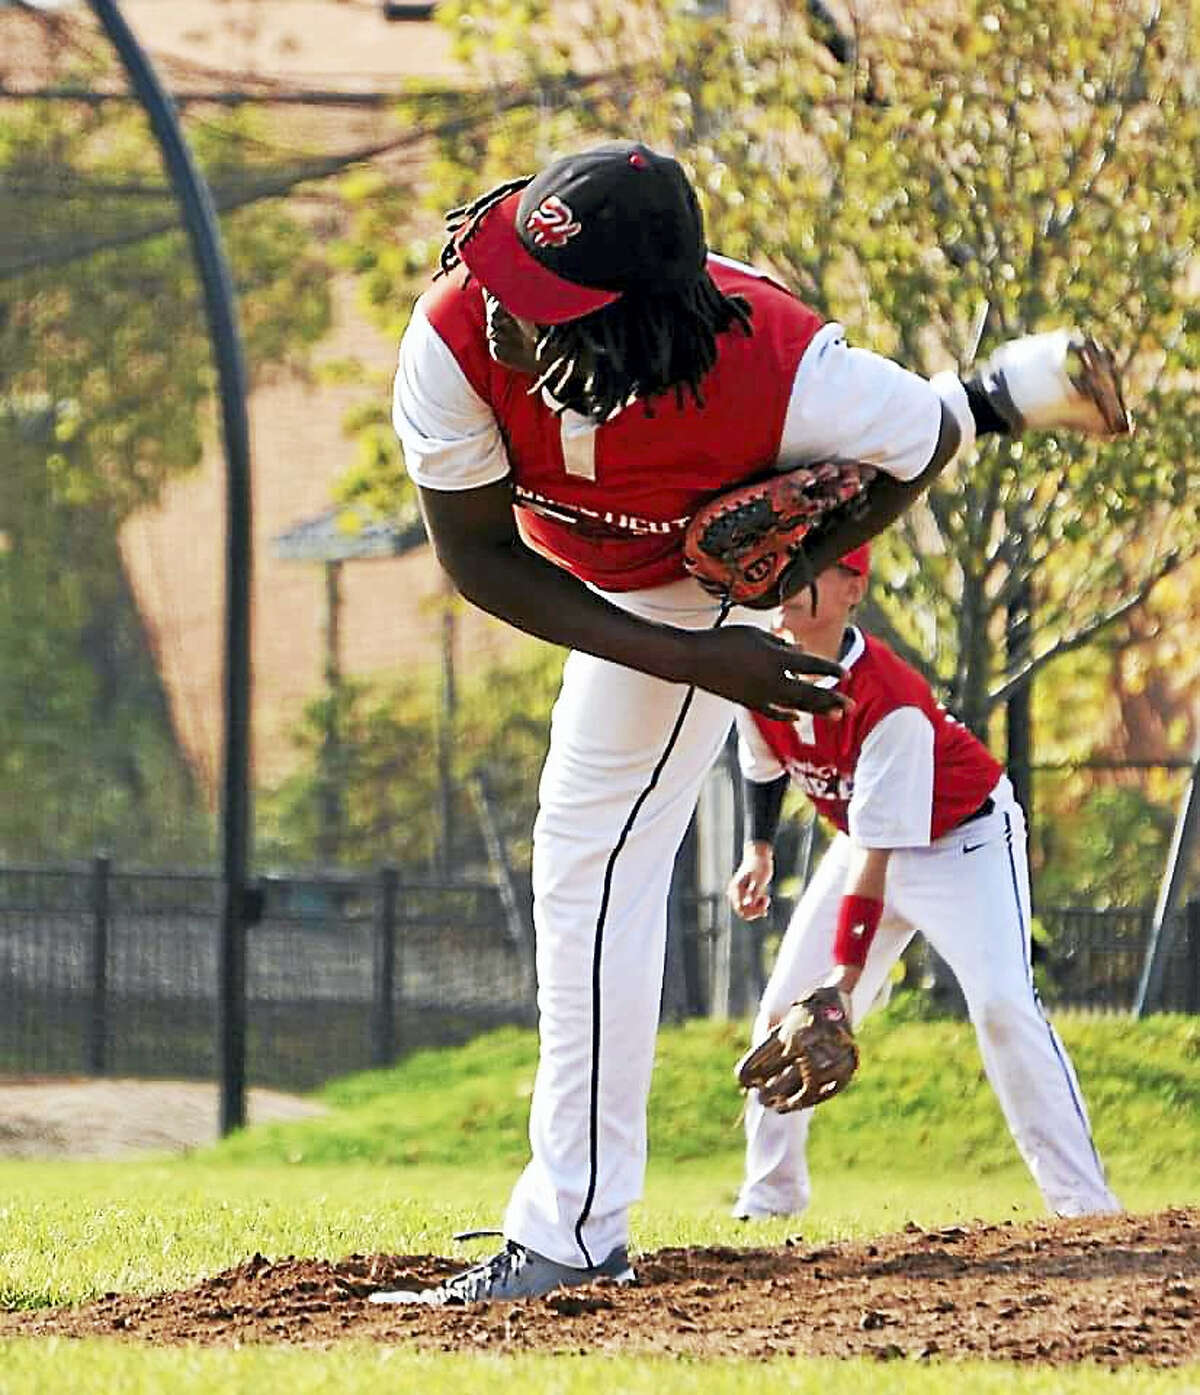 Toby Marineau has made a splash in his first season with the Vinal Tech baseball team.